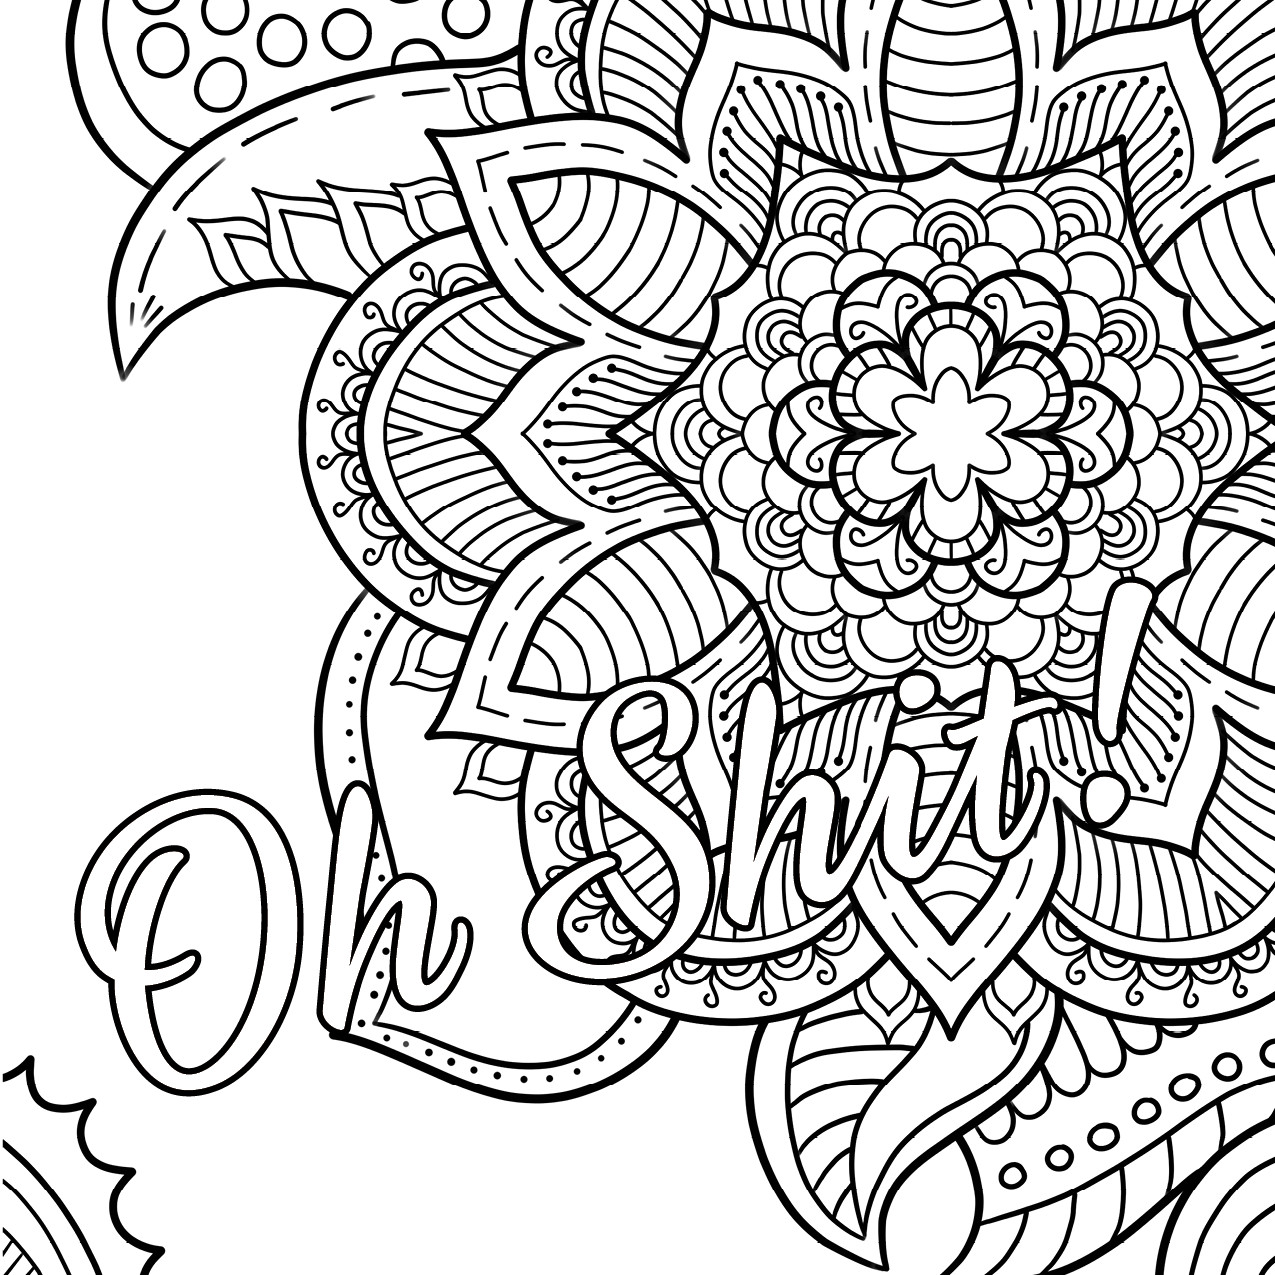 Coloring Pages For Adults Words  Oh Shit Free Coloring Page Swear Word Coloring Book